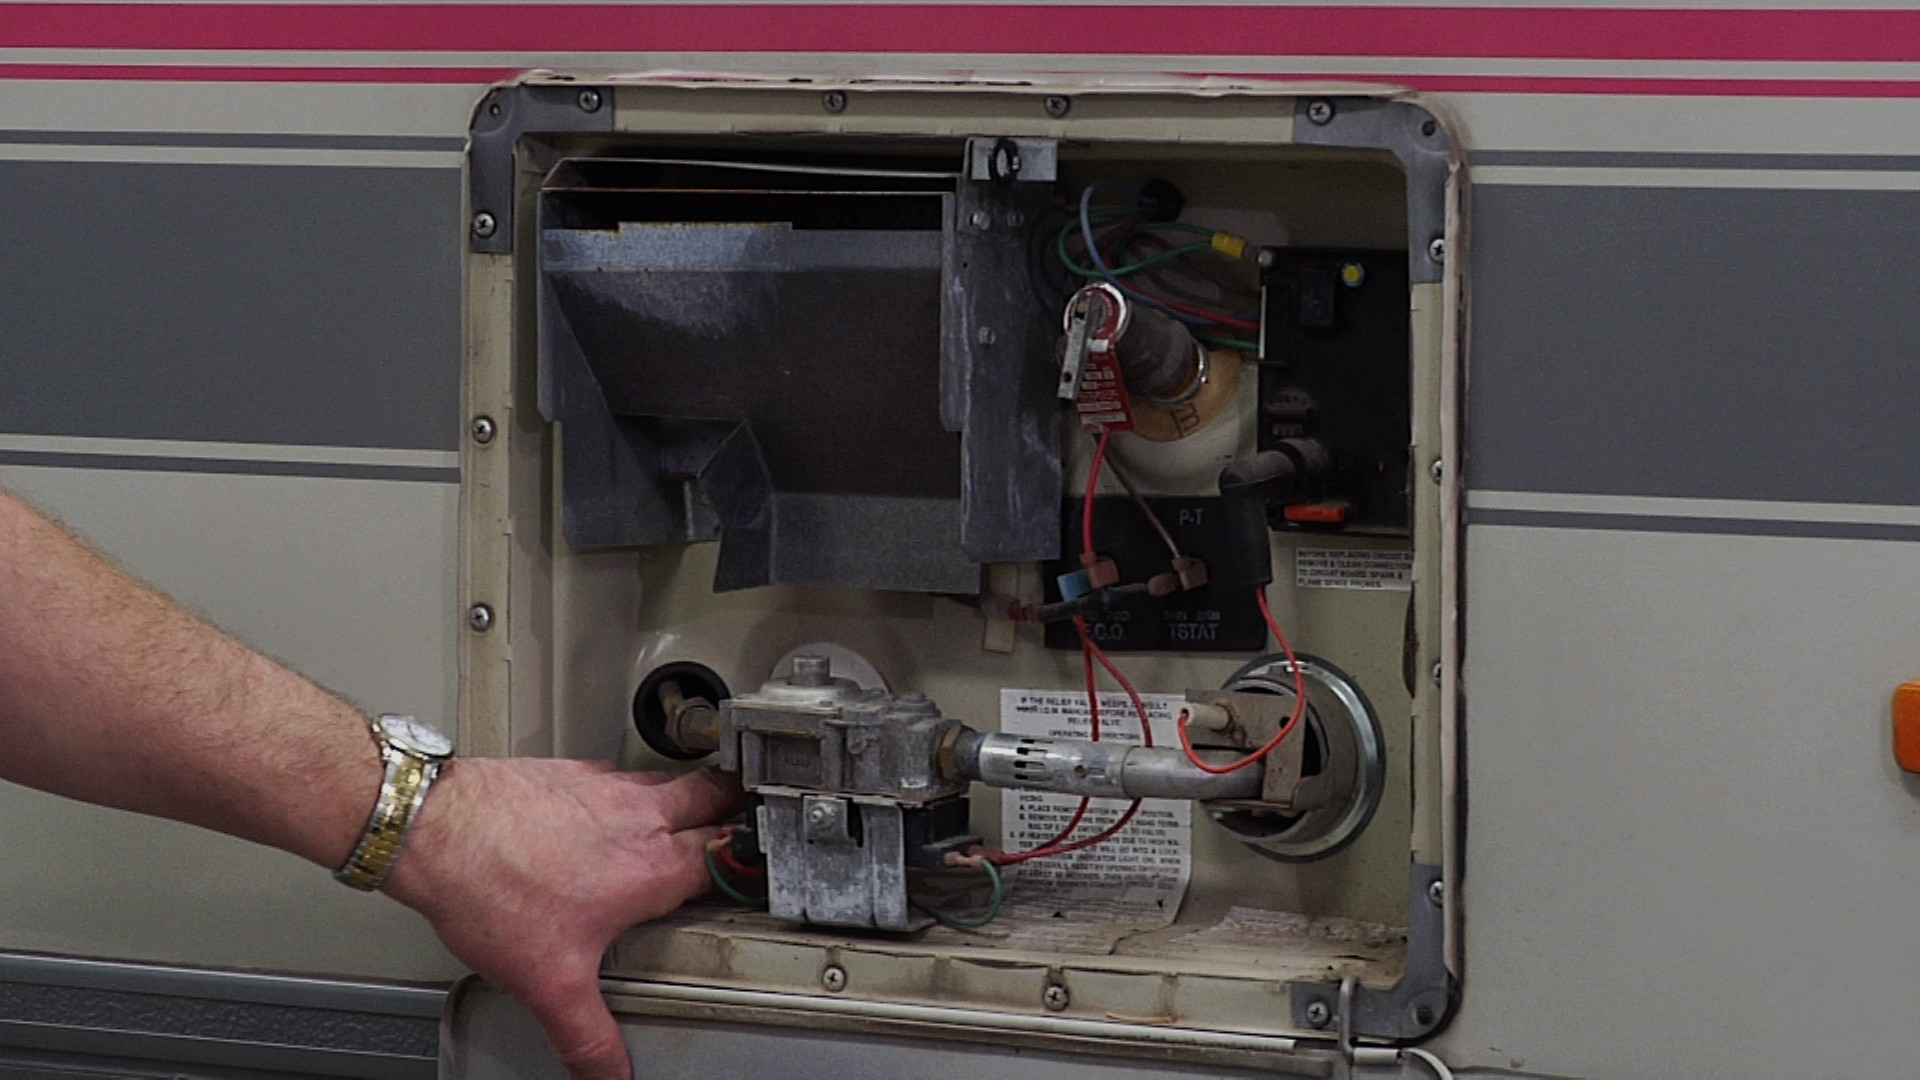 Gas Hot Water Heater Parts Diagram Rv Water Heater Overview and Troubleshoot Of Gas Hot Water Heater Parts Diagram